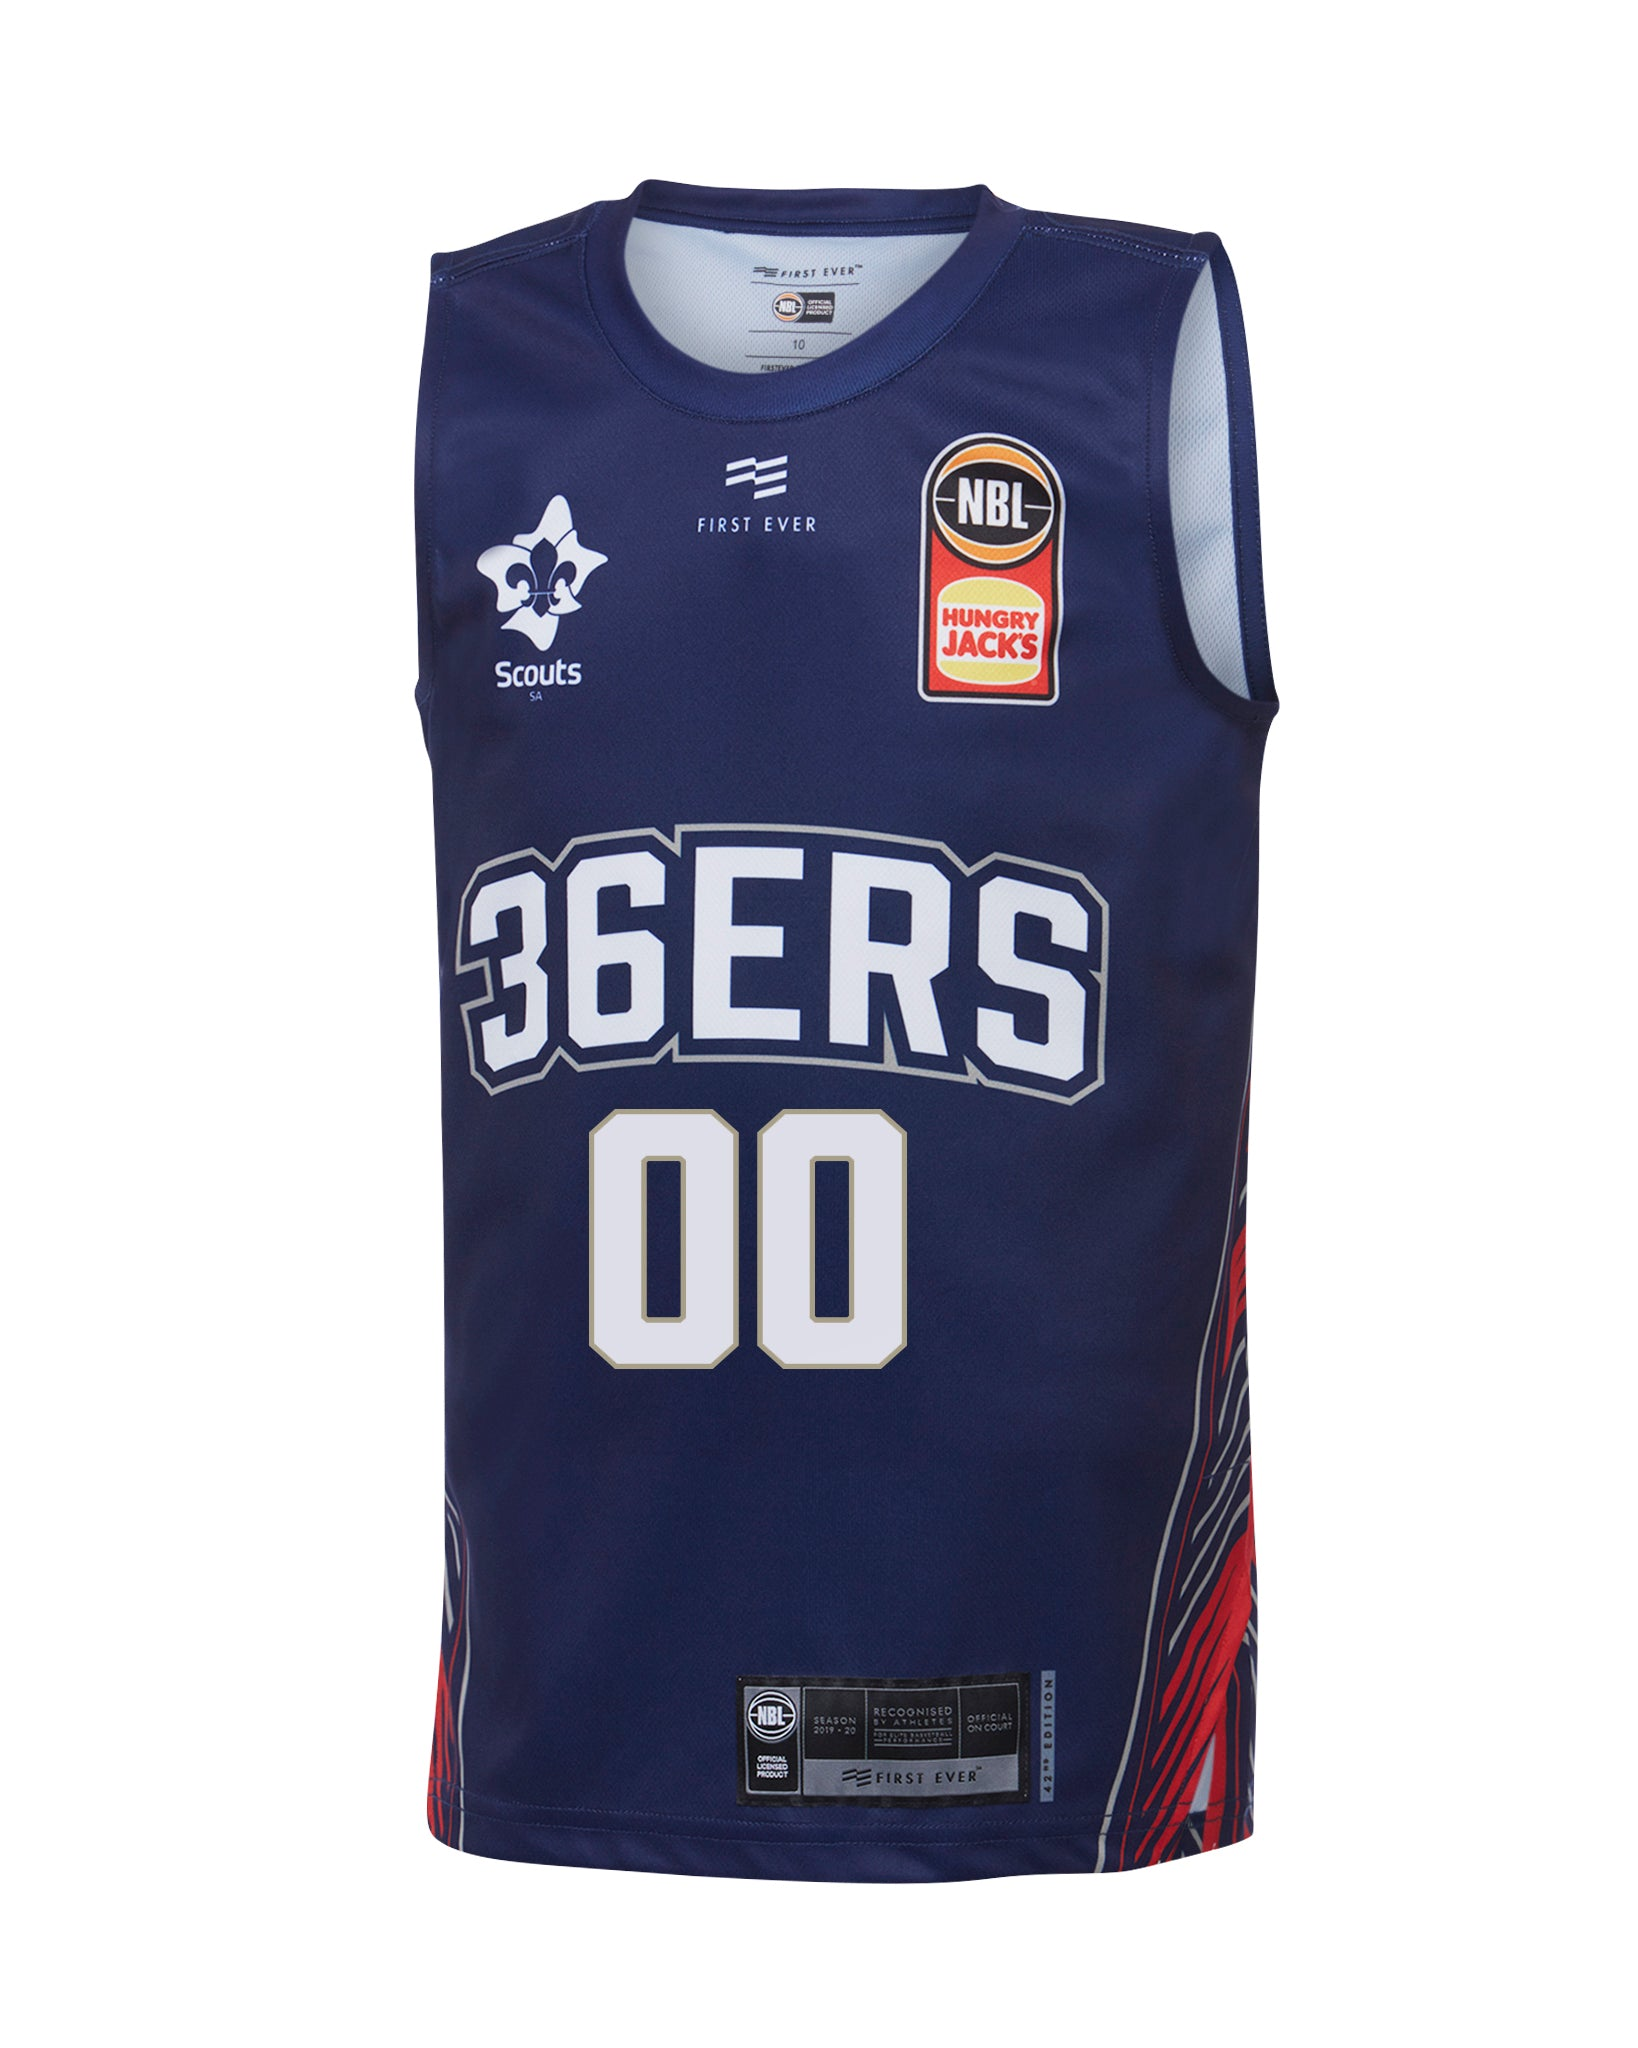 Adelaide 36ers 19/20 Youth Authentic Home Jersey - Other Players